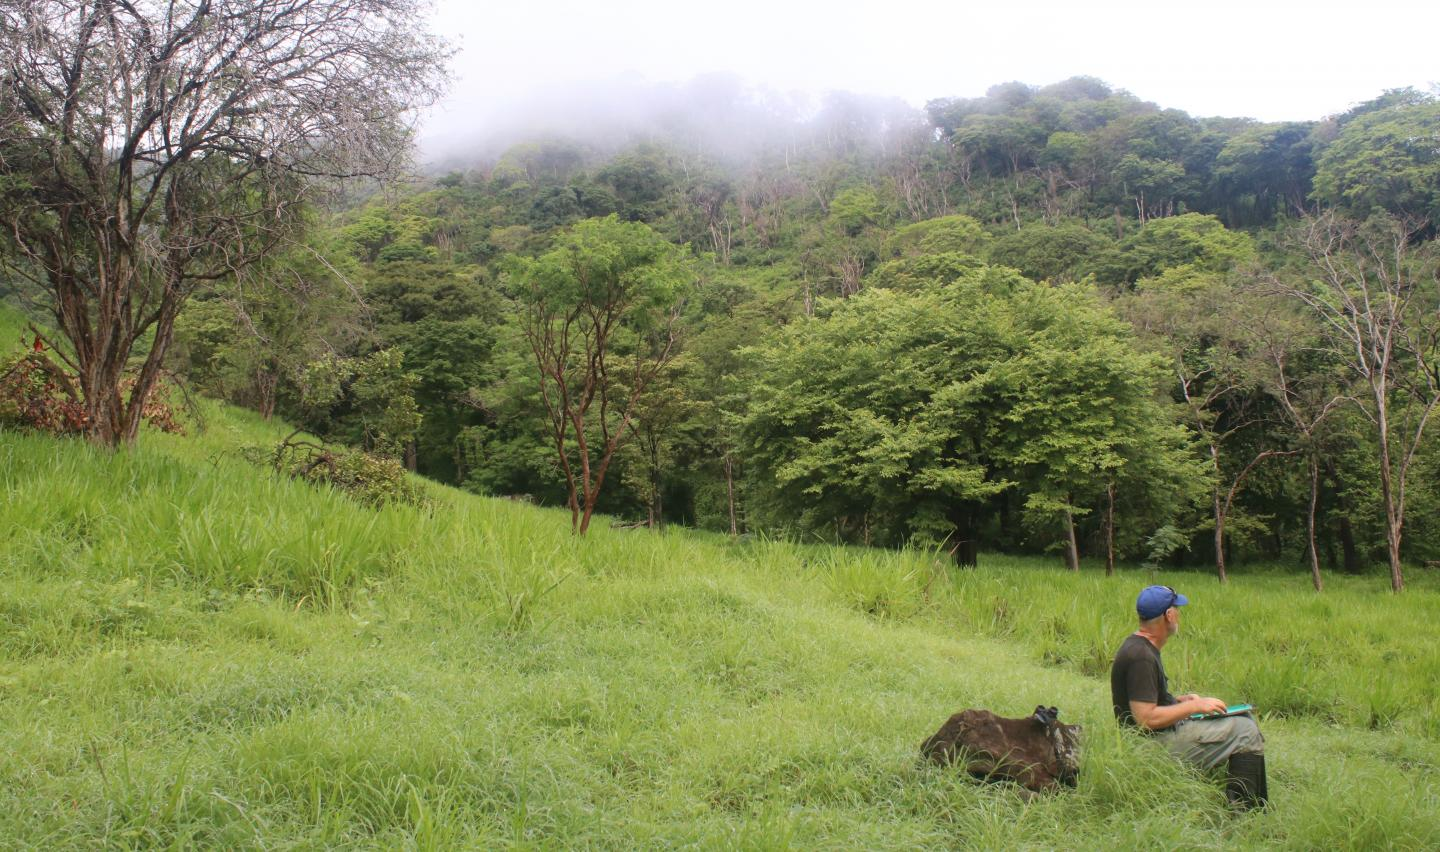 Ornithologist and cow in Costa Rica